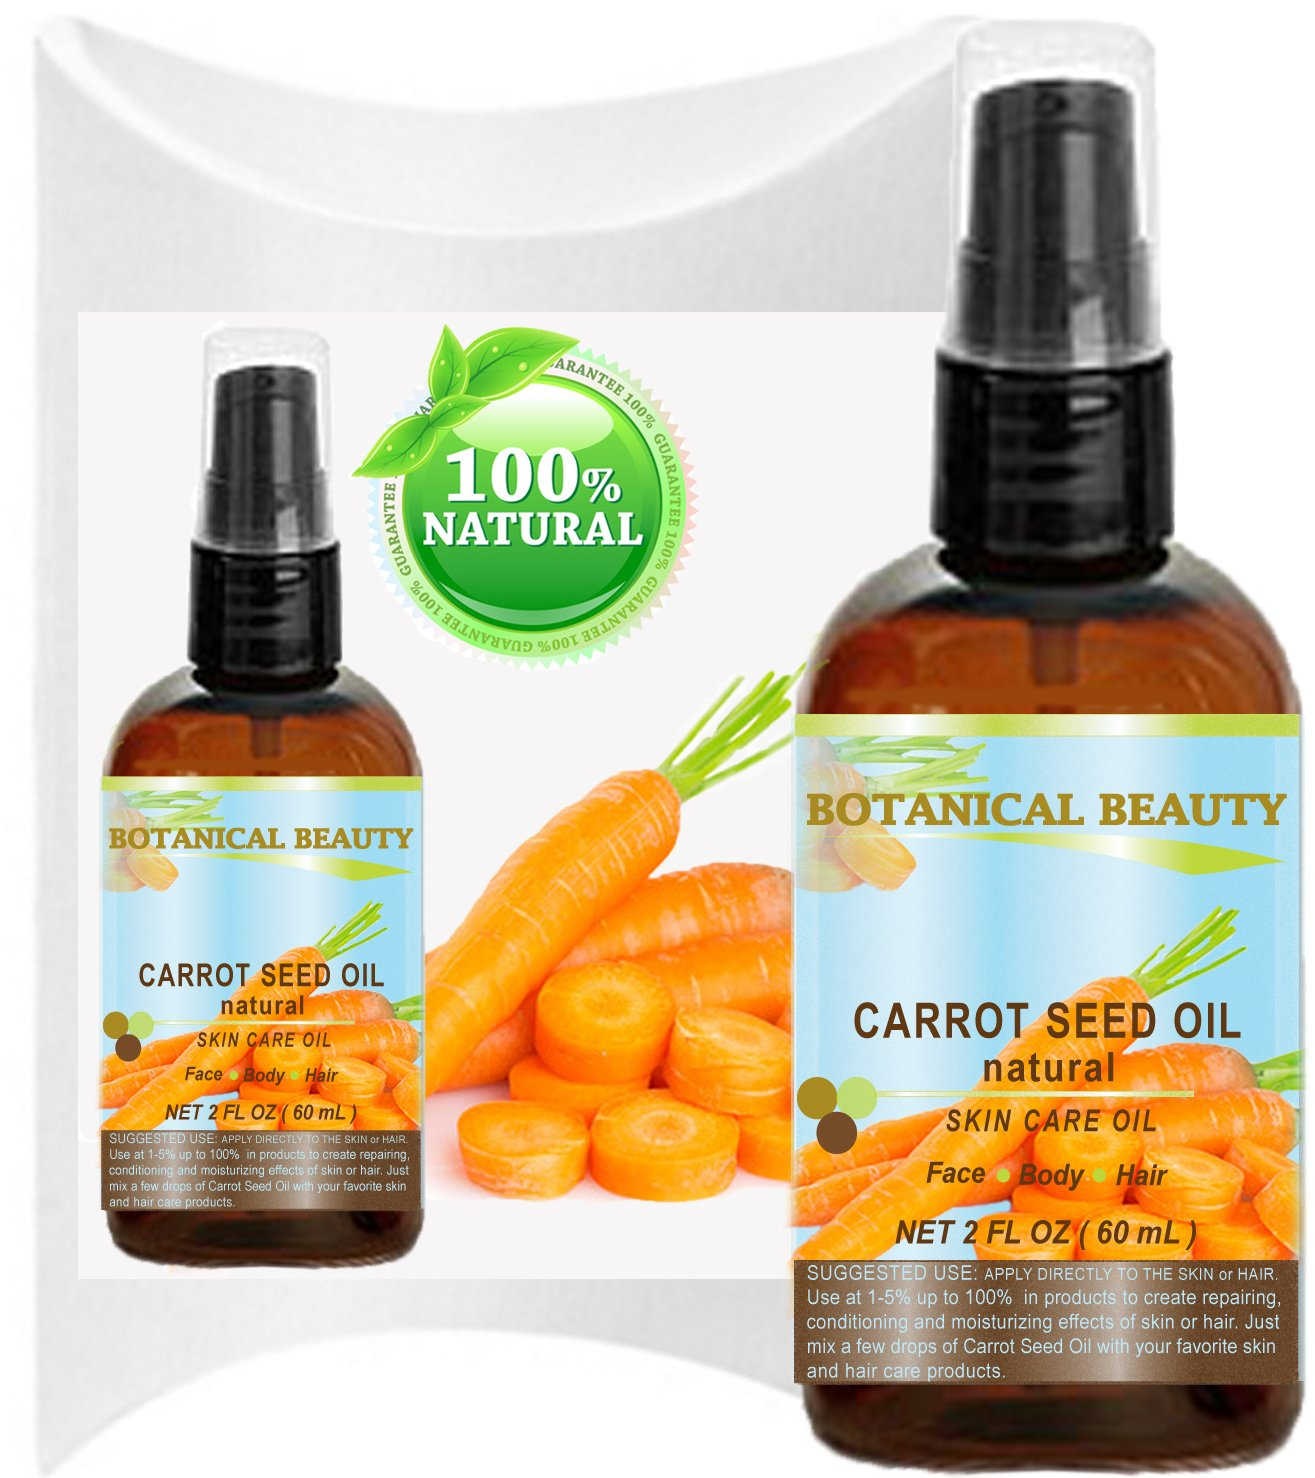 "CARROT SEED OIL 100 % Natural Cold Pressed Carrier Oil. 2 Fl.oz.- 60 ml. Skin, Body, Hair and Lip Care. ""One of the best oils to rejuvenate and regenerate skin tissues."" by Botanical Beauty"